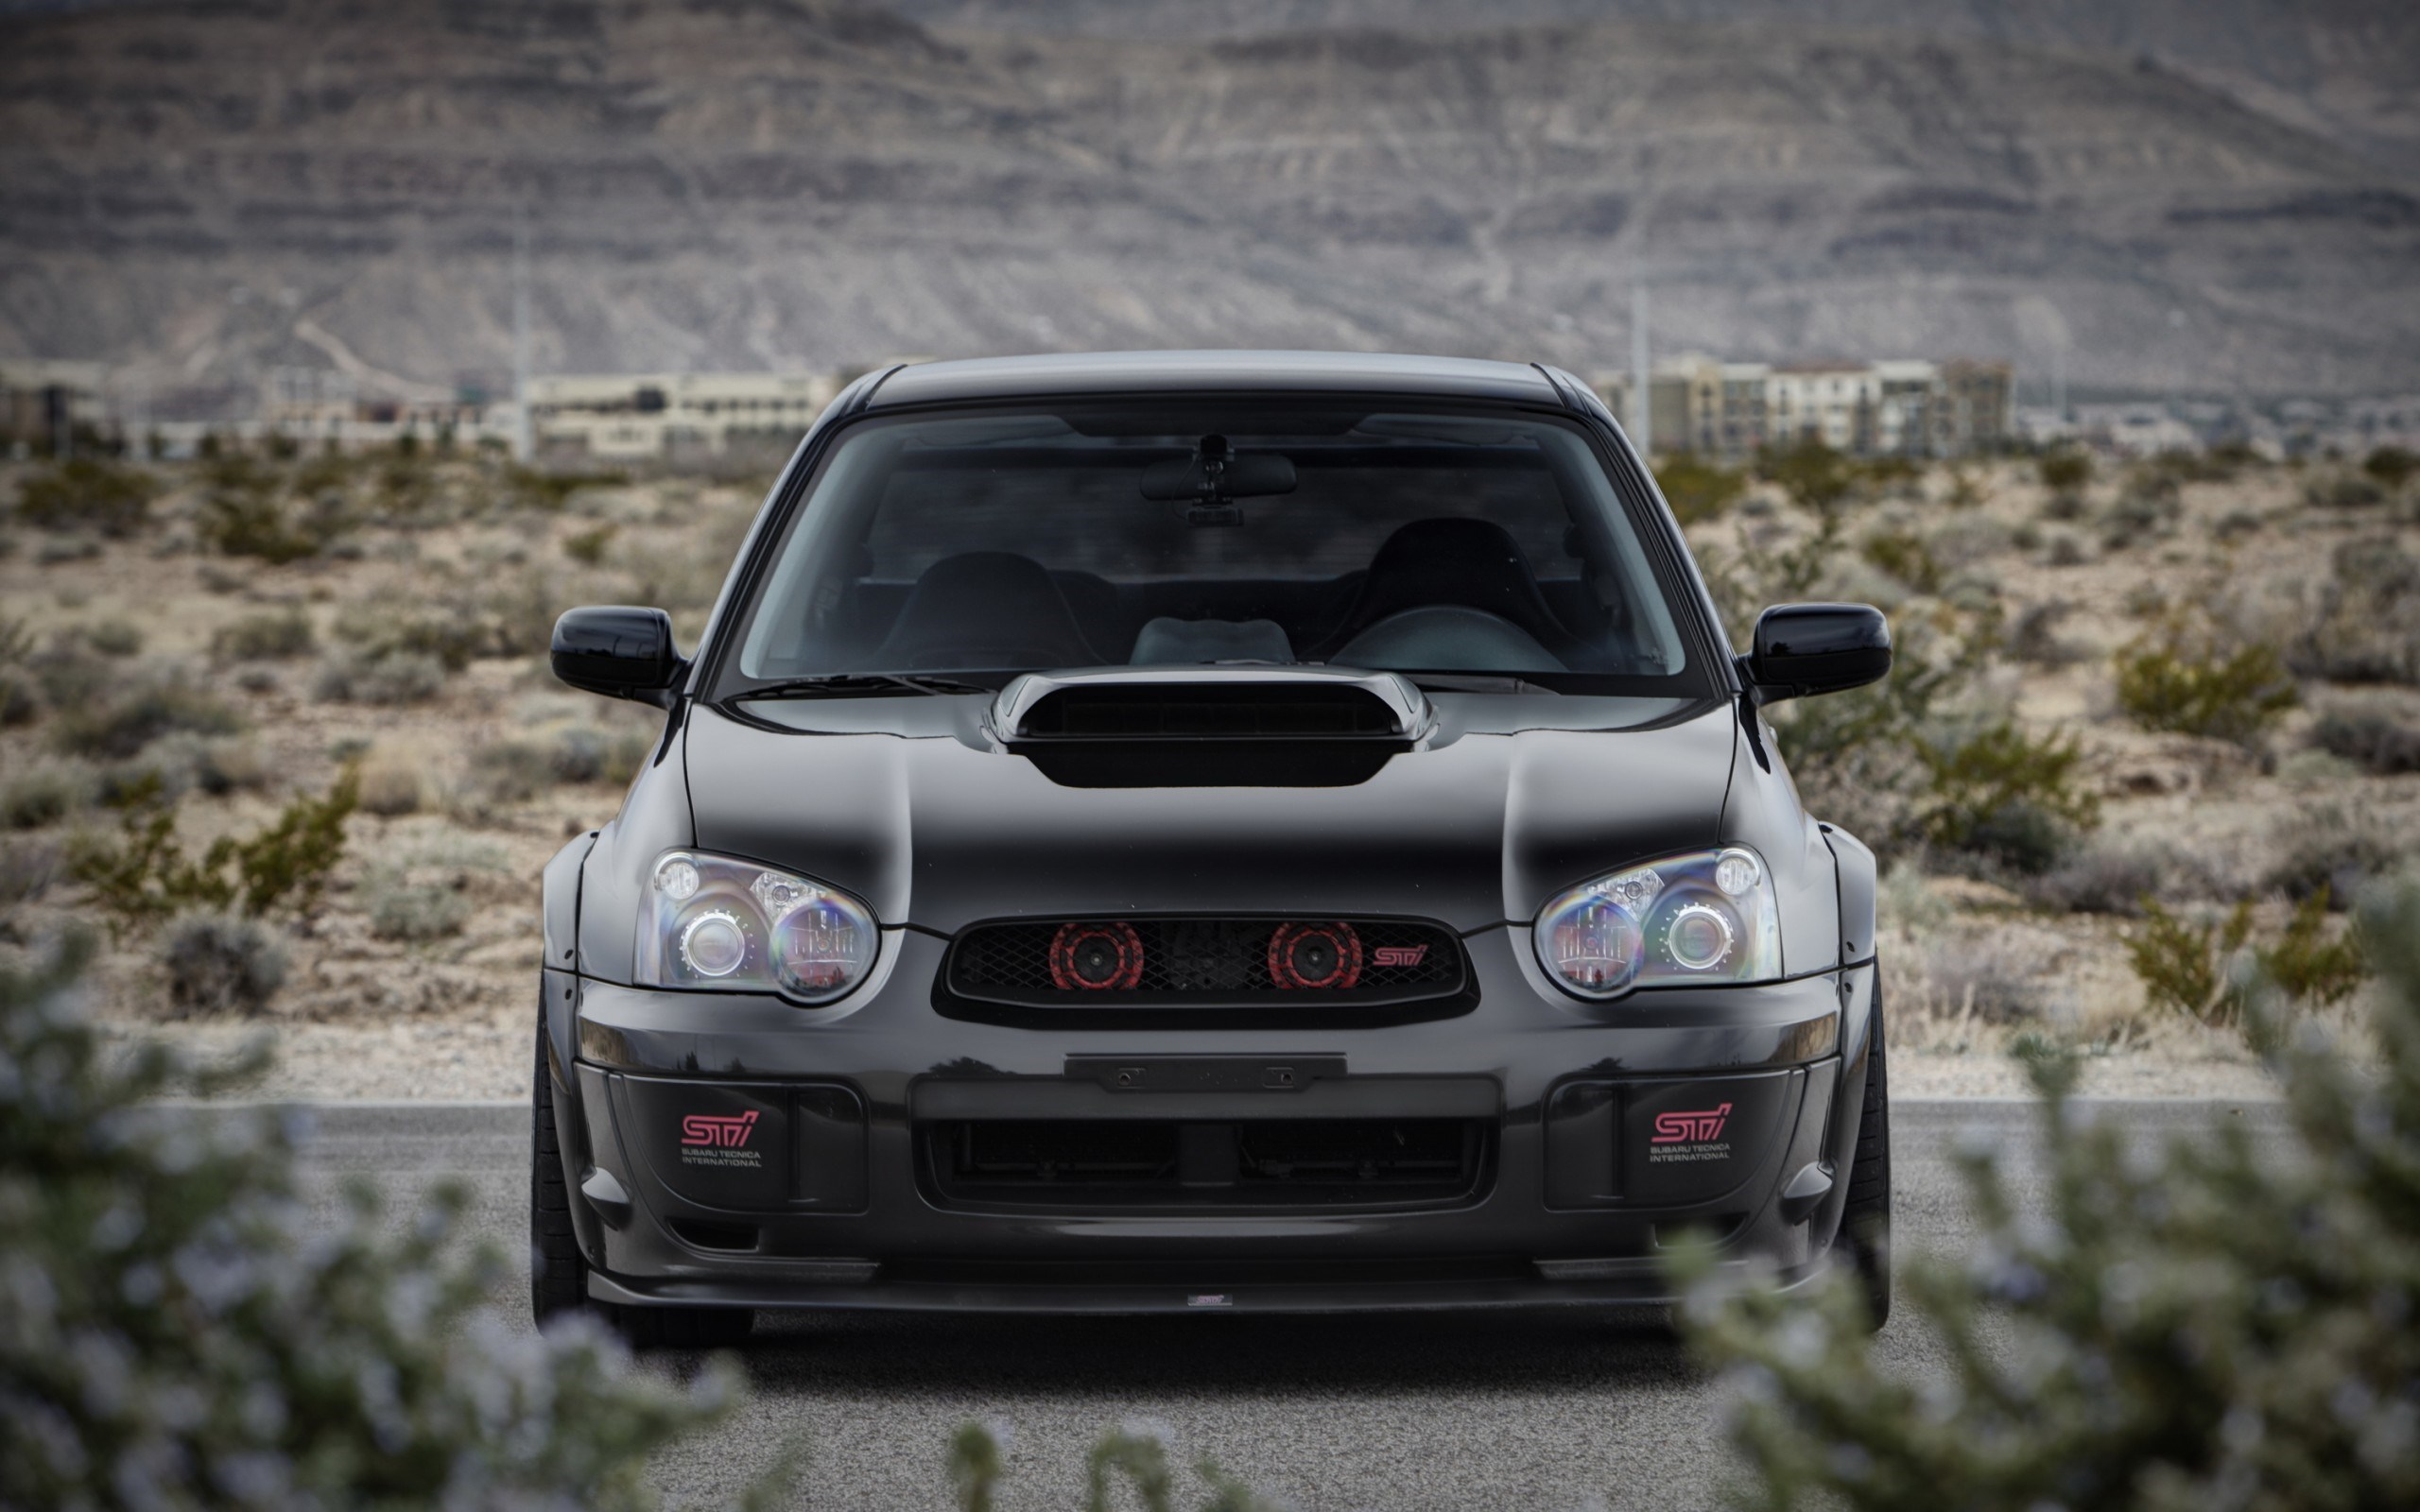 Awesome Subaru Impreza Wallpaper